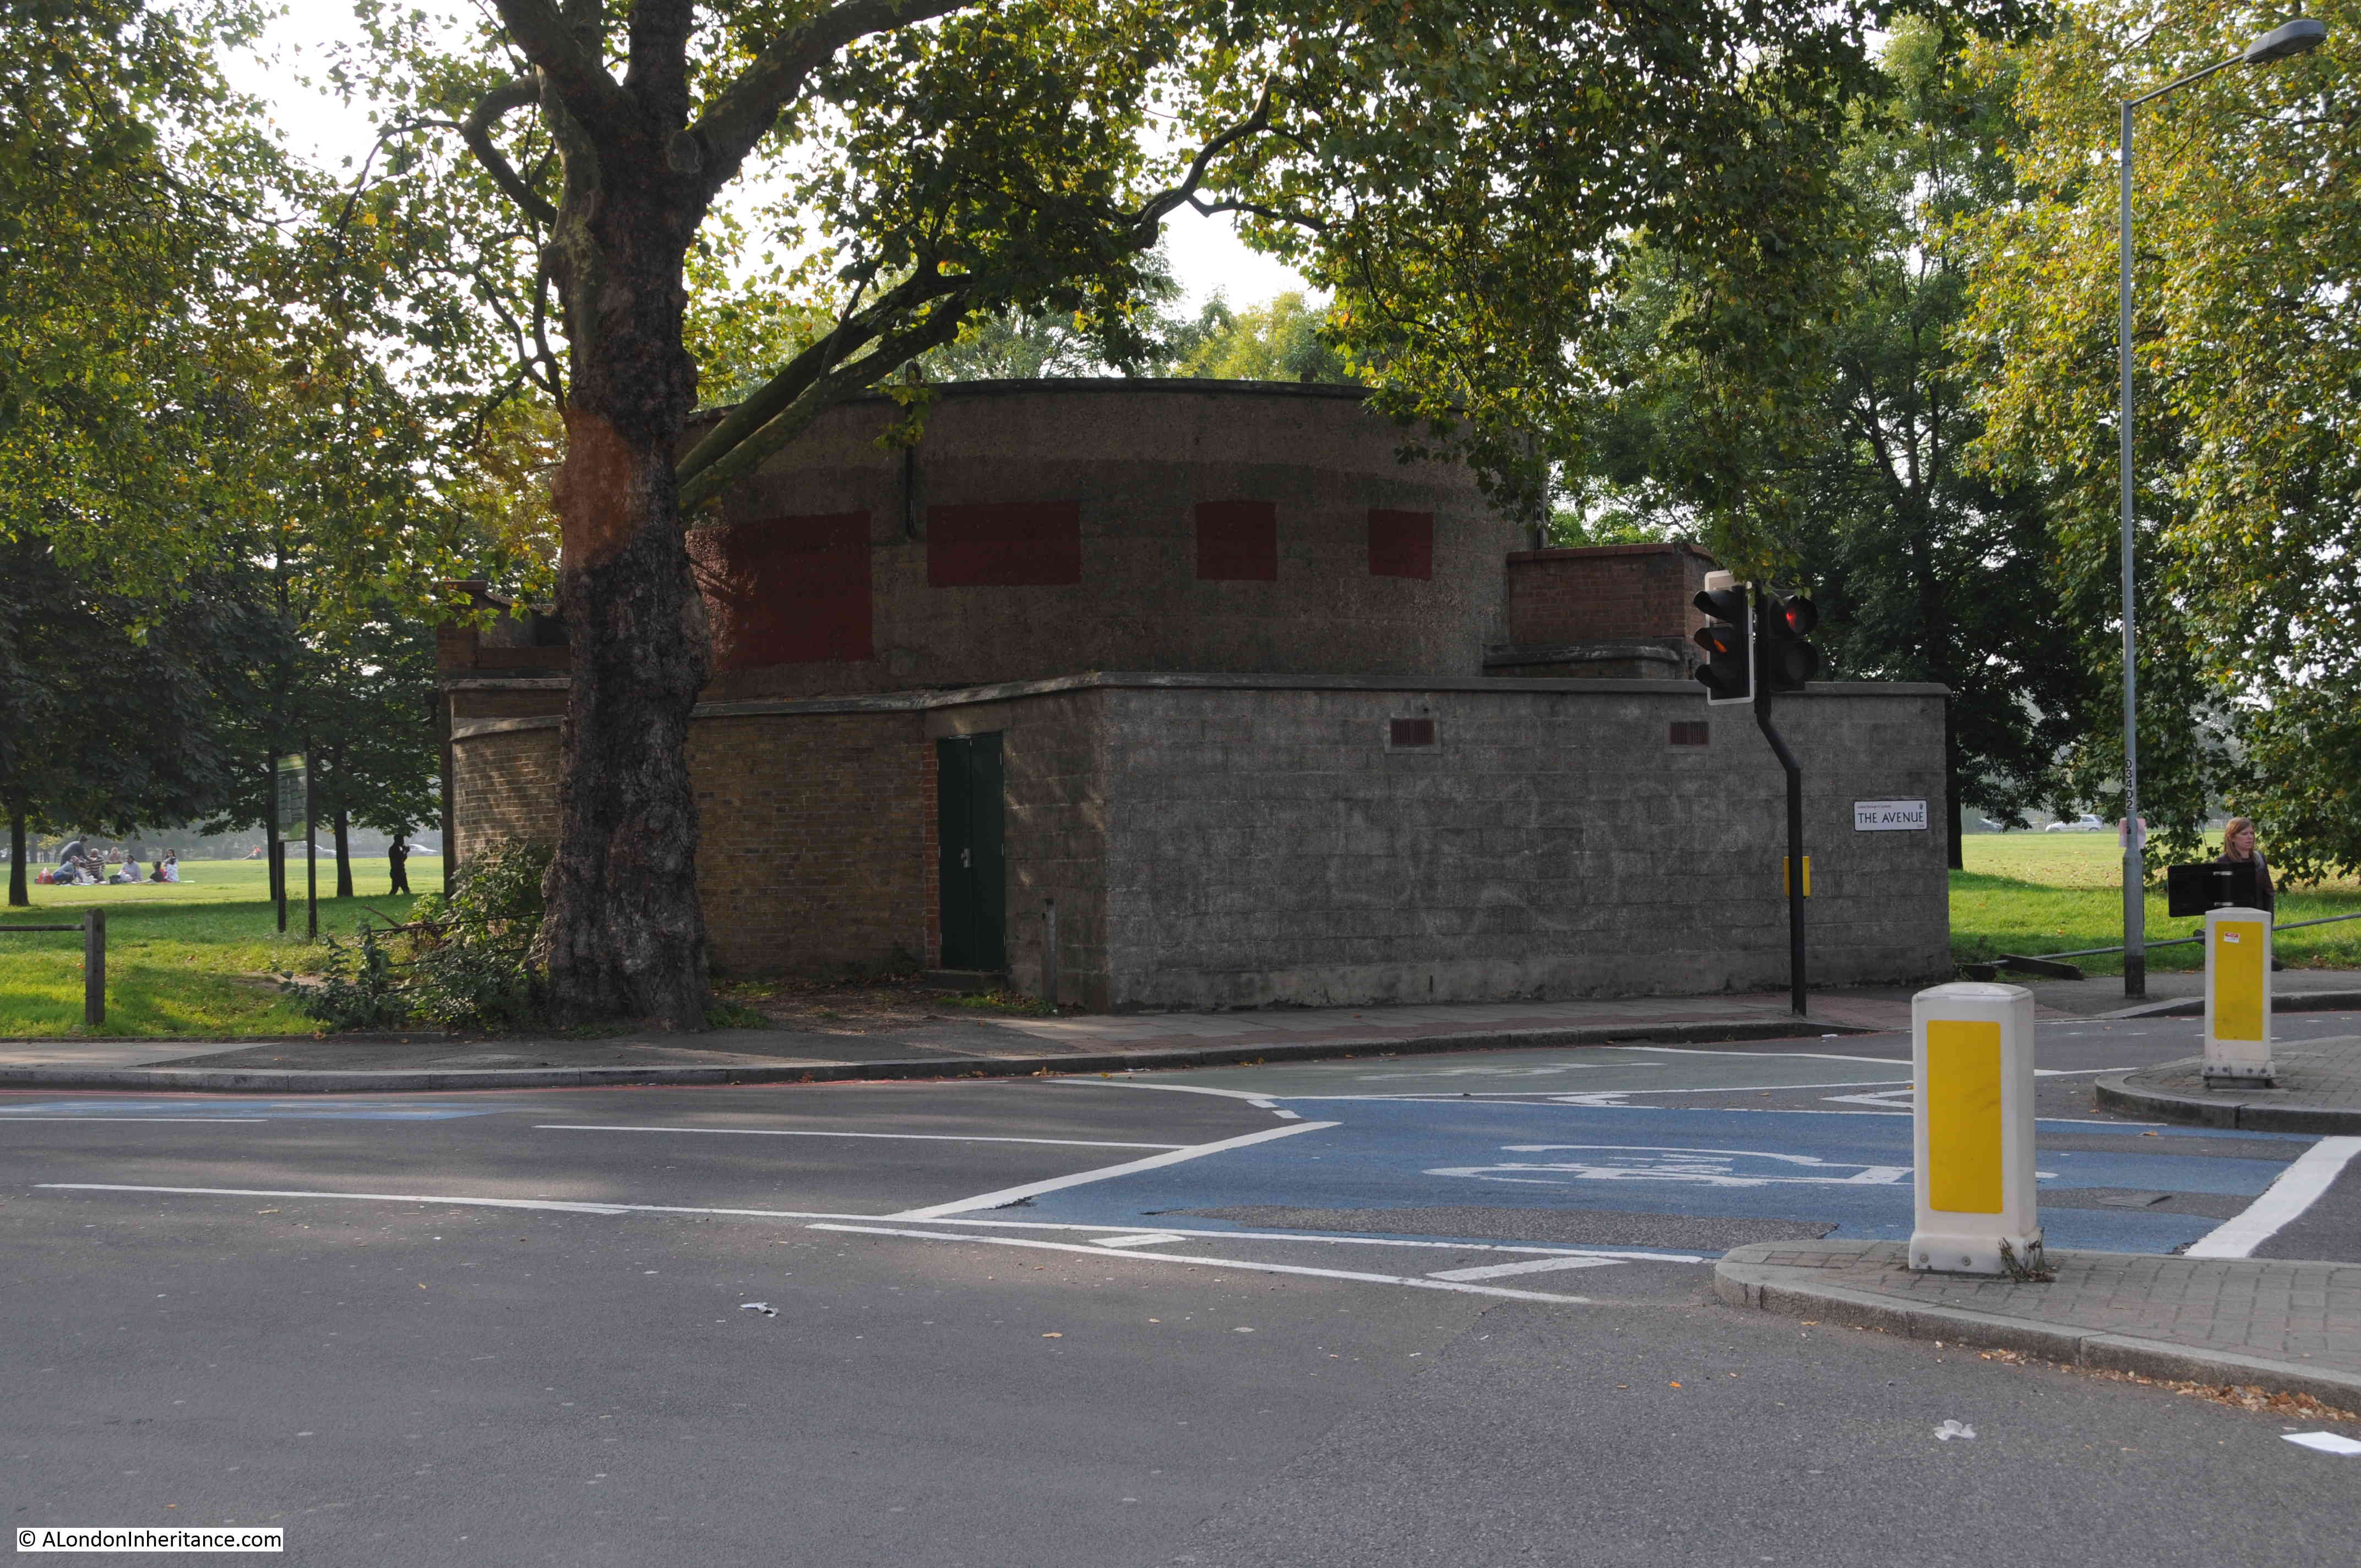 Shelters Drive Way : Clapham south deep level shelter a london inheritance